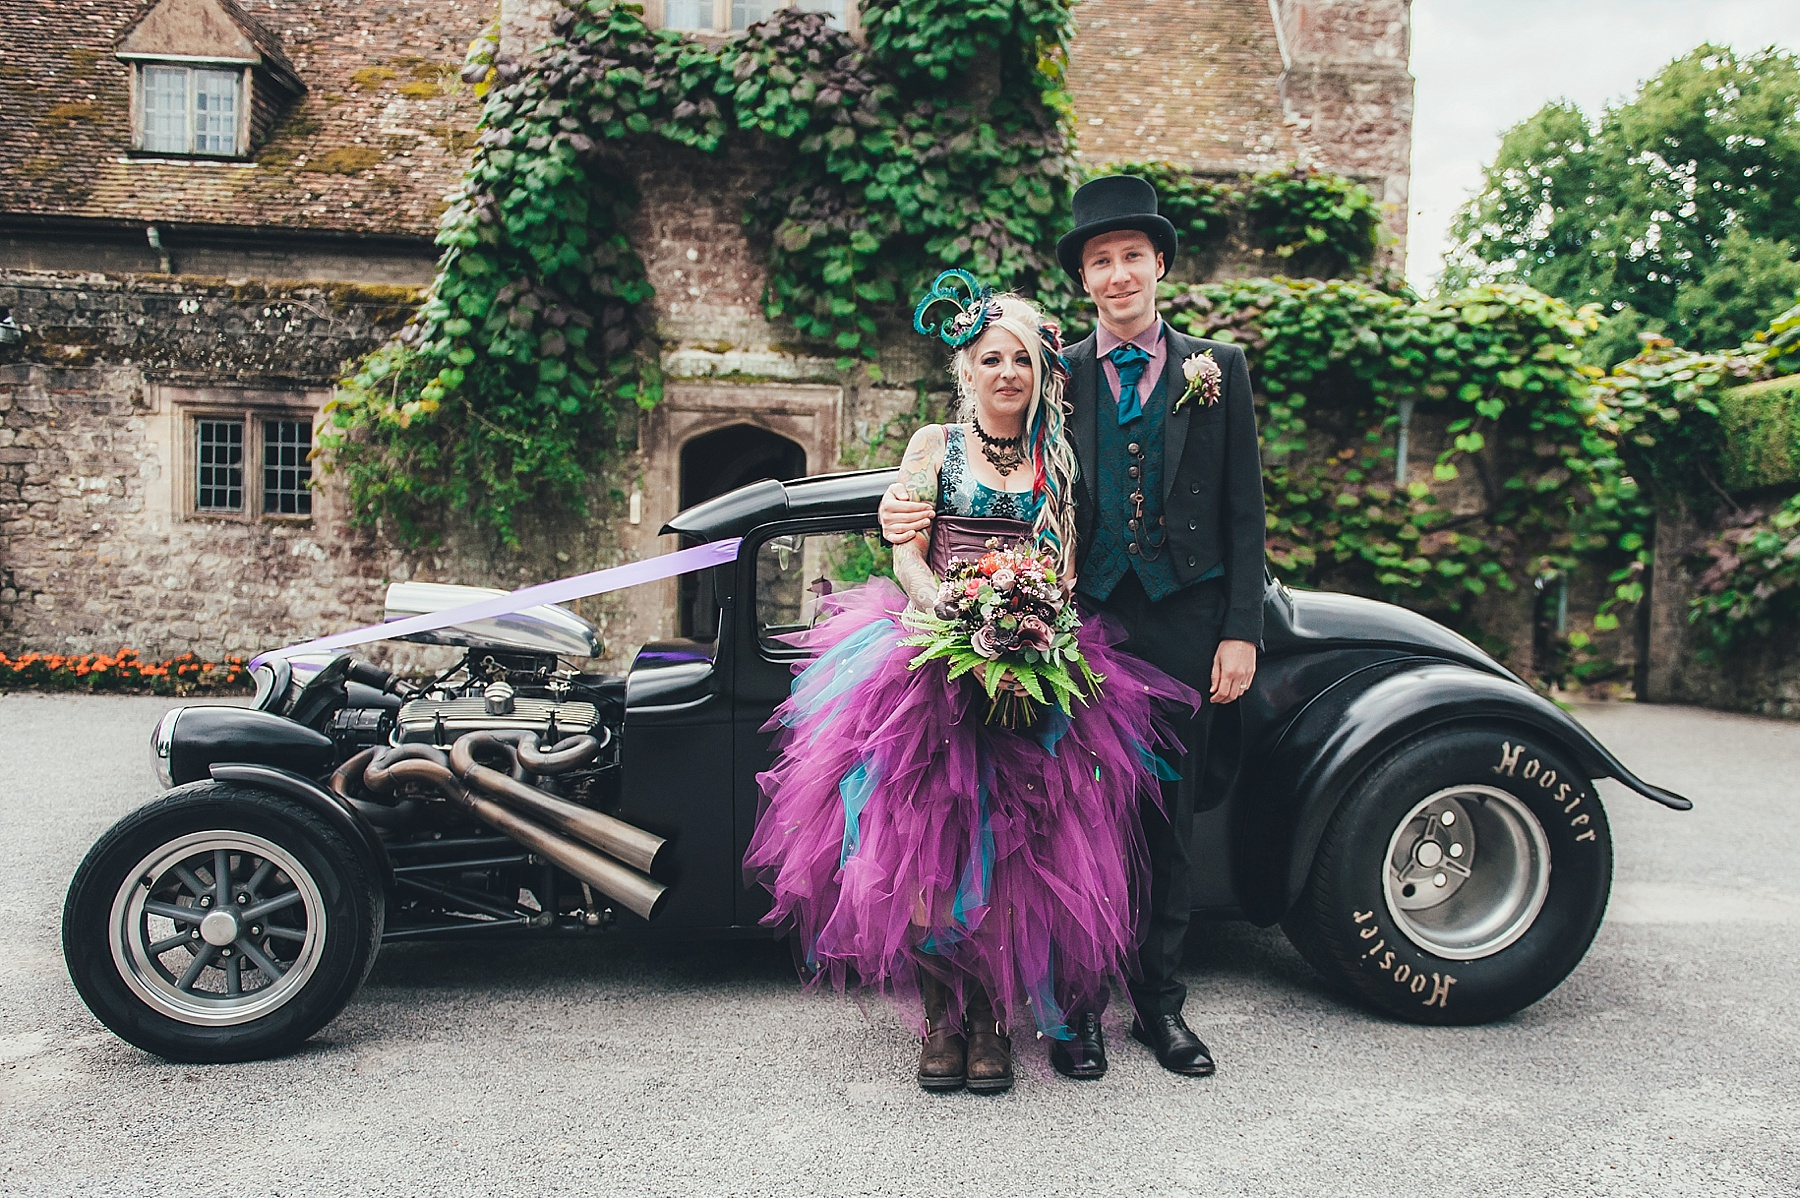 Weird and Whacky wedding entertainment theme ideas